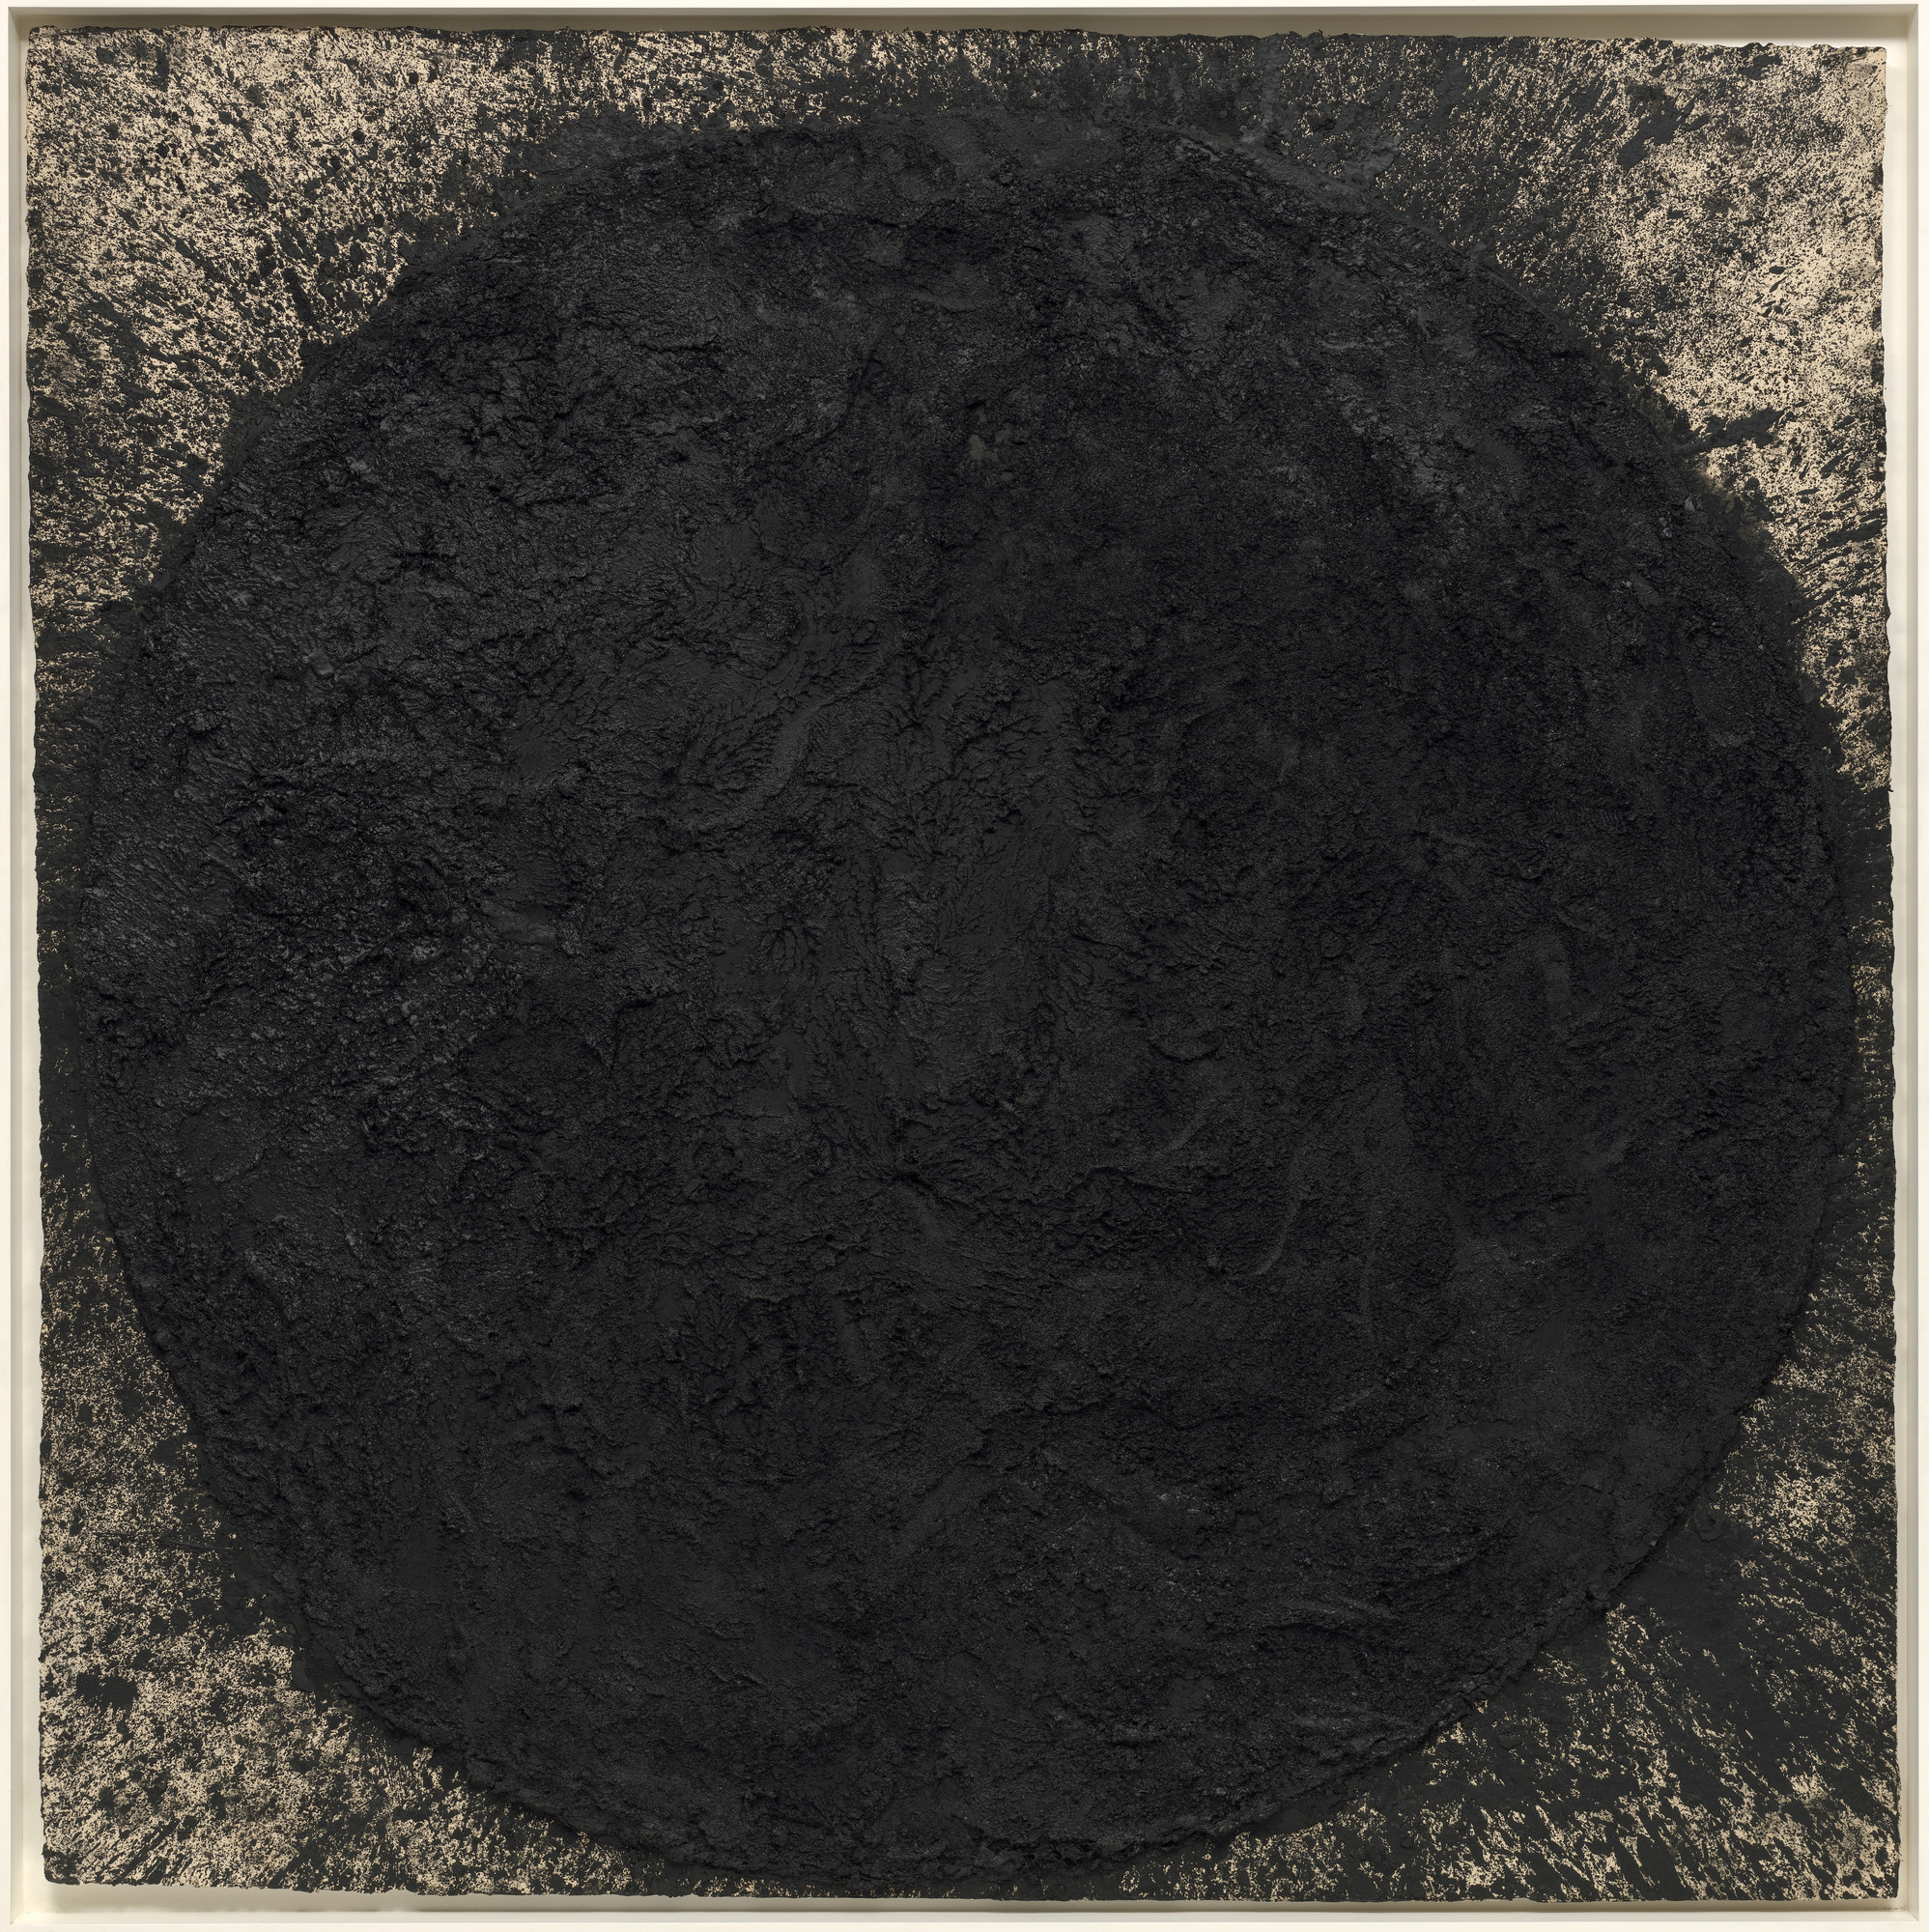 Richard Serra. Out-of-Round X. 1999